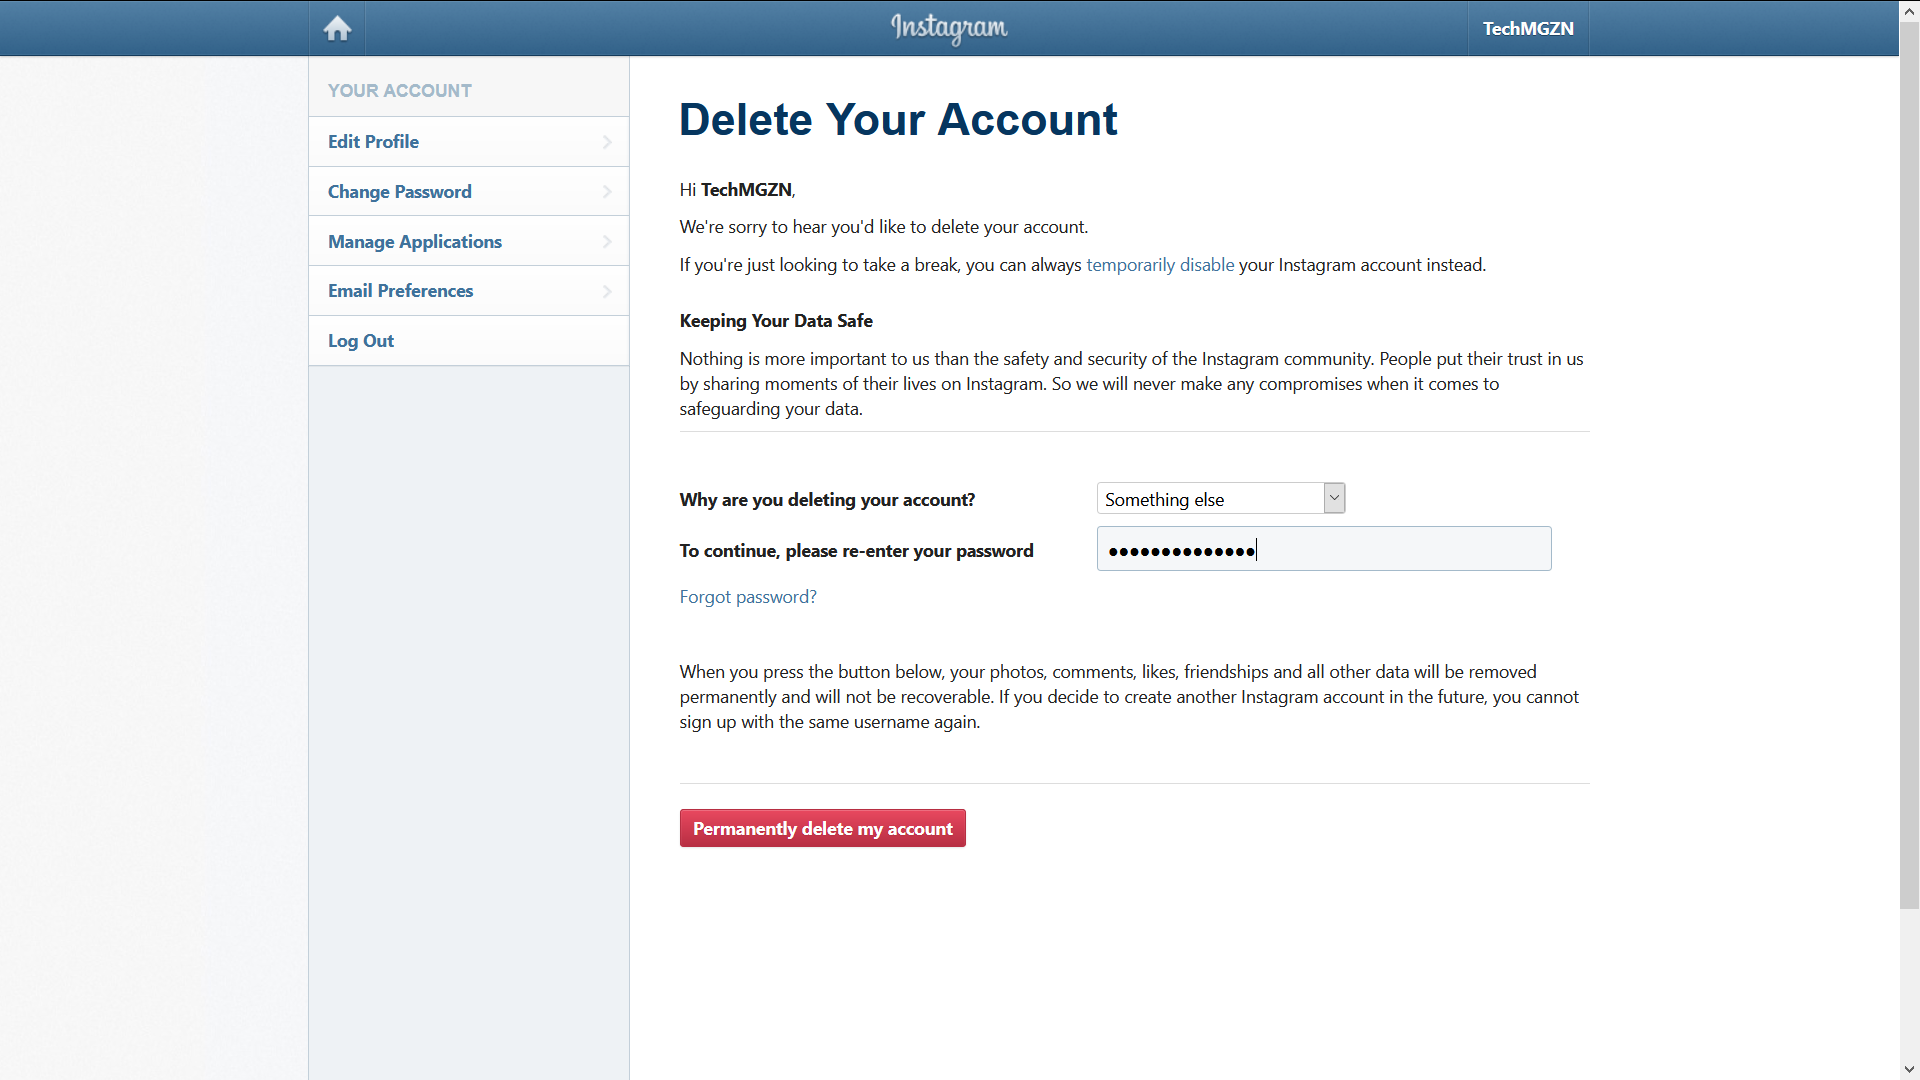 permanently delete your instagram account step 2